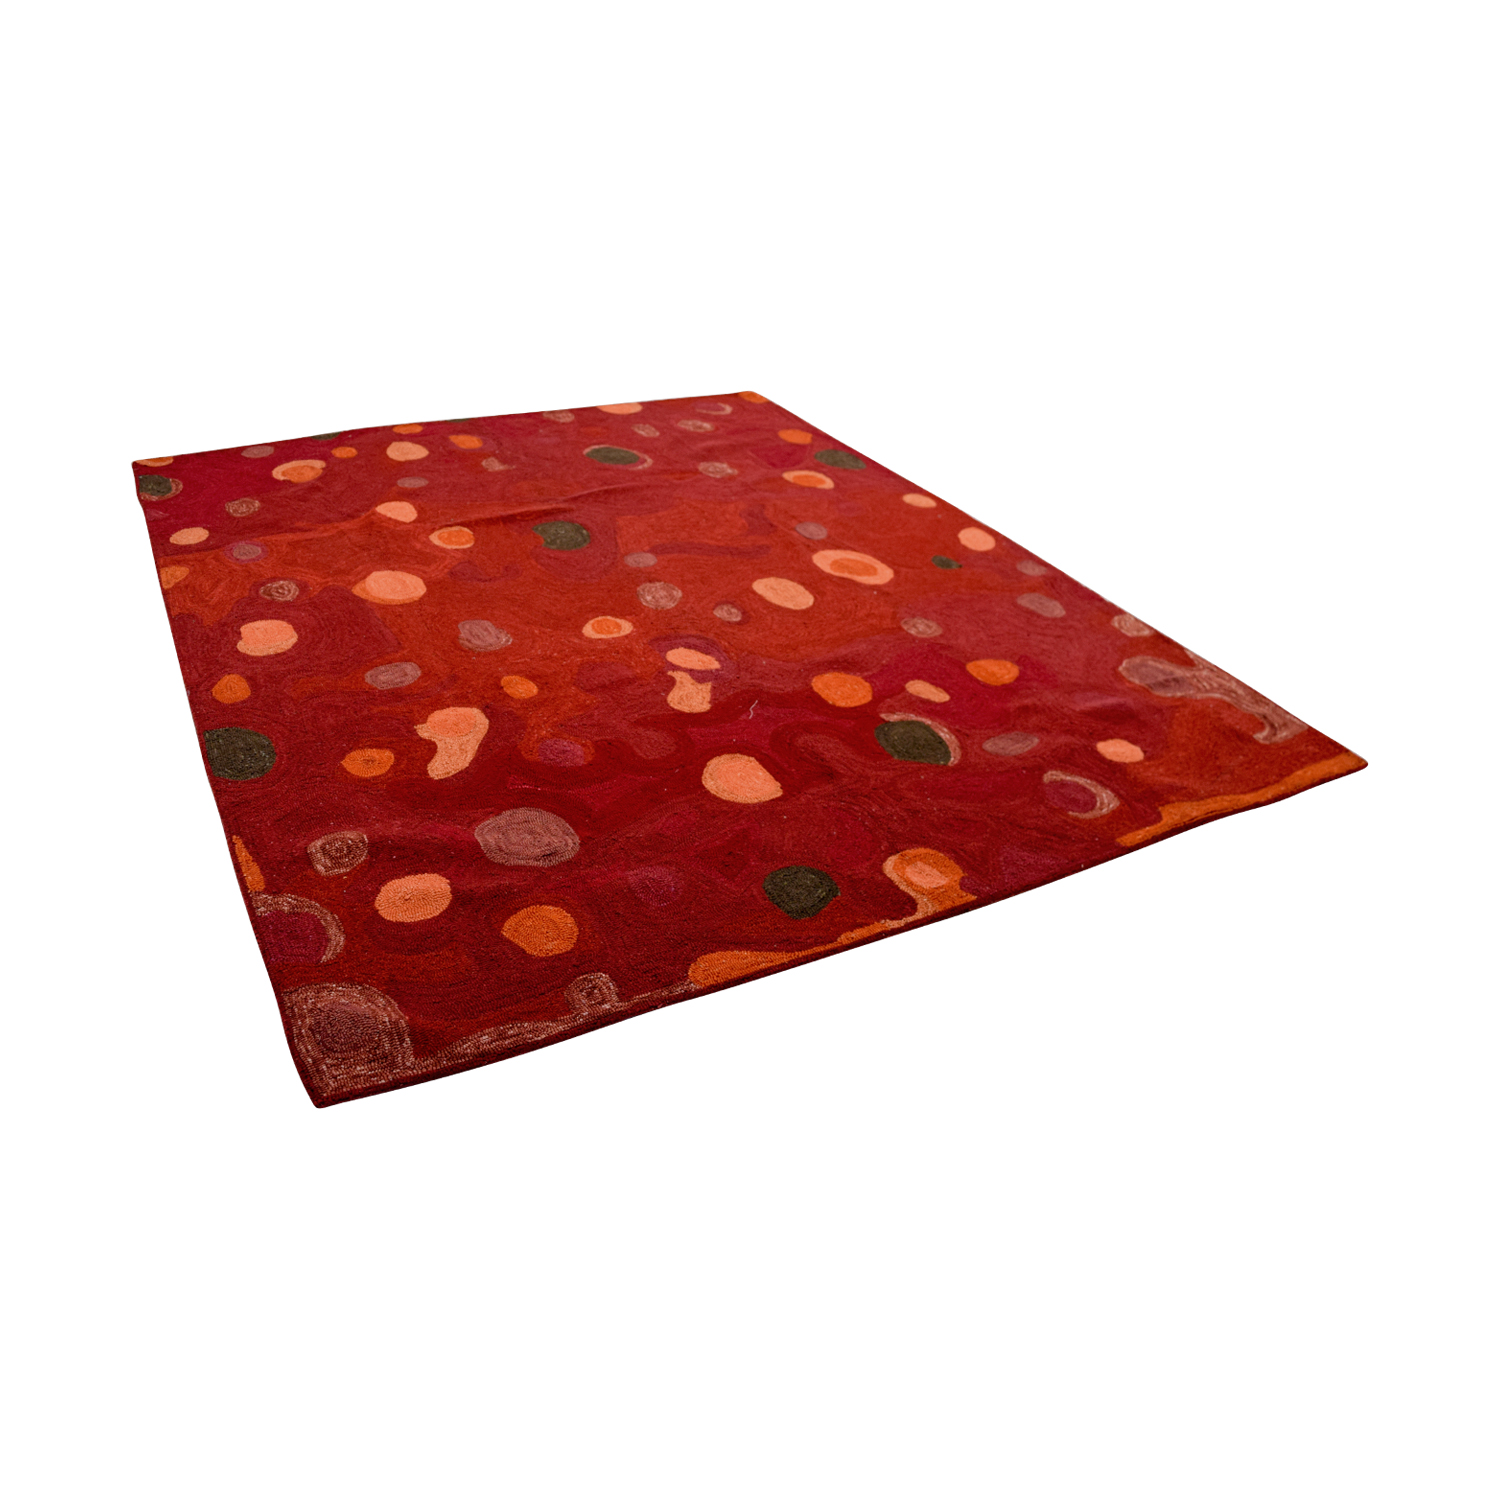 Obeetee Red with Colored Spots Rug / Decor